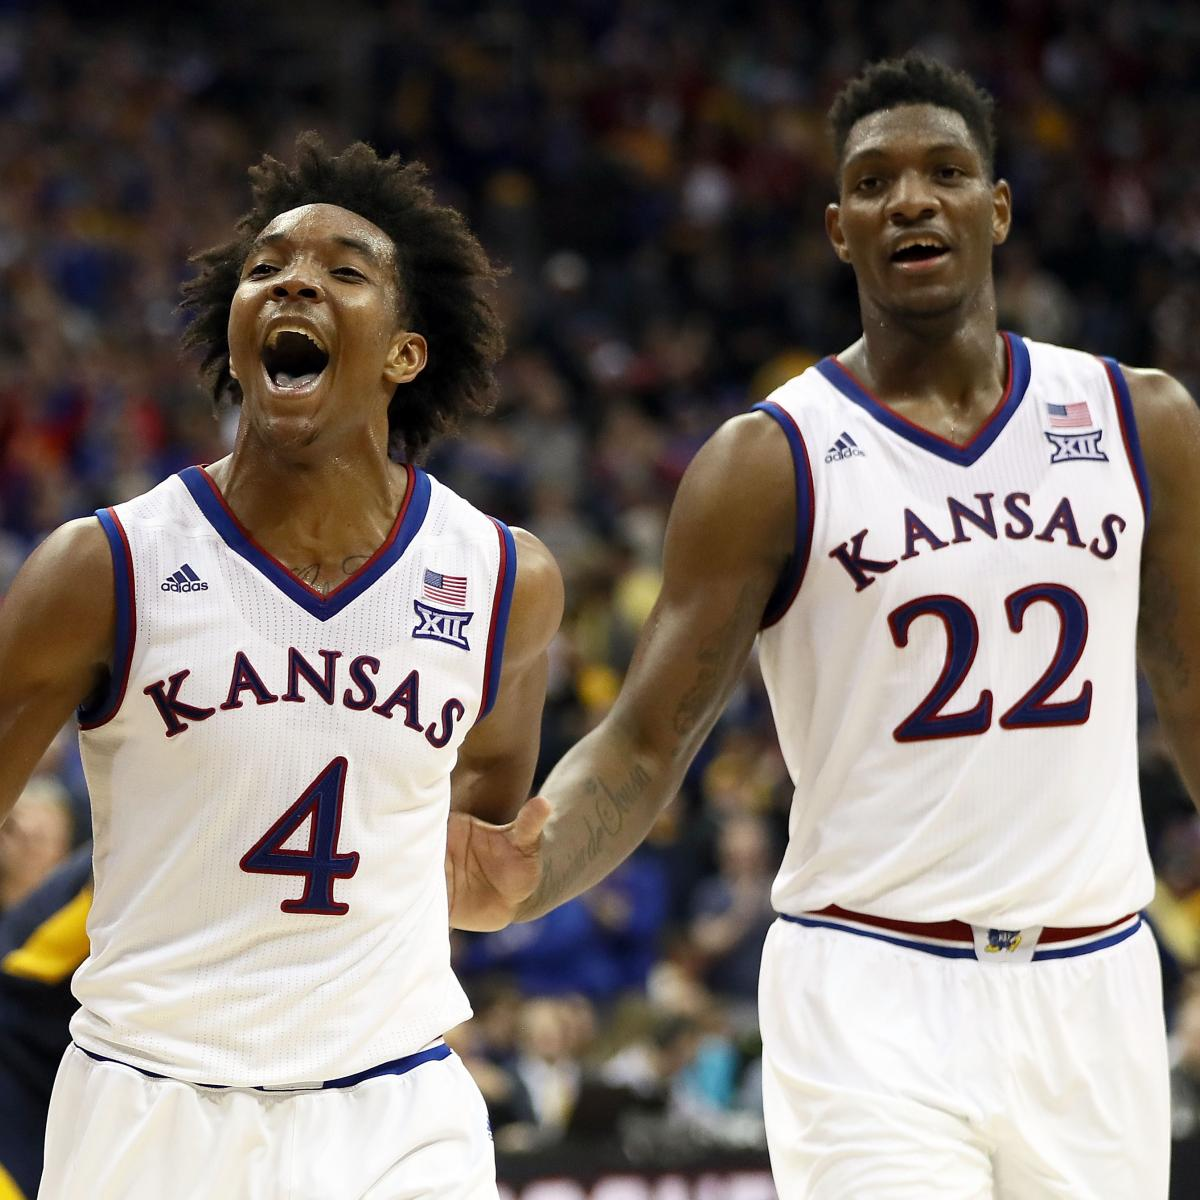 NCAA Tournament 2018: Buying or Selling Top Contenders in the Men's Field